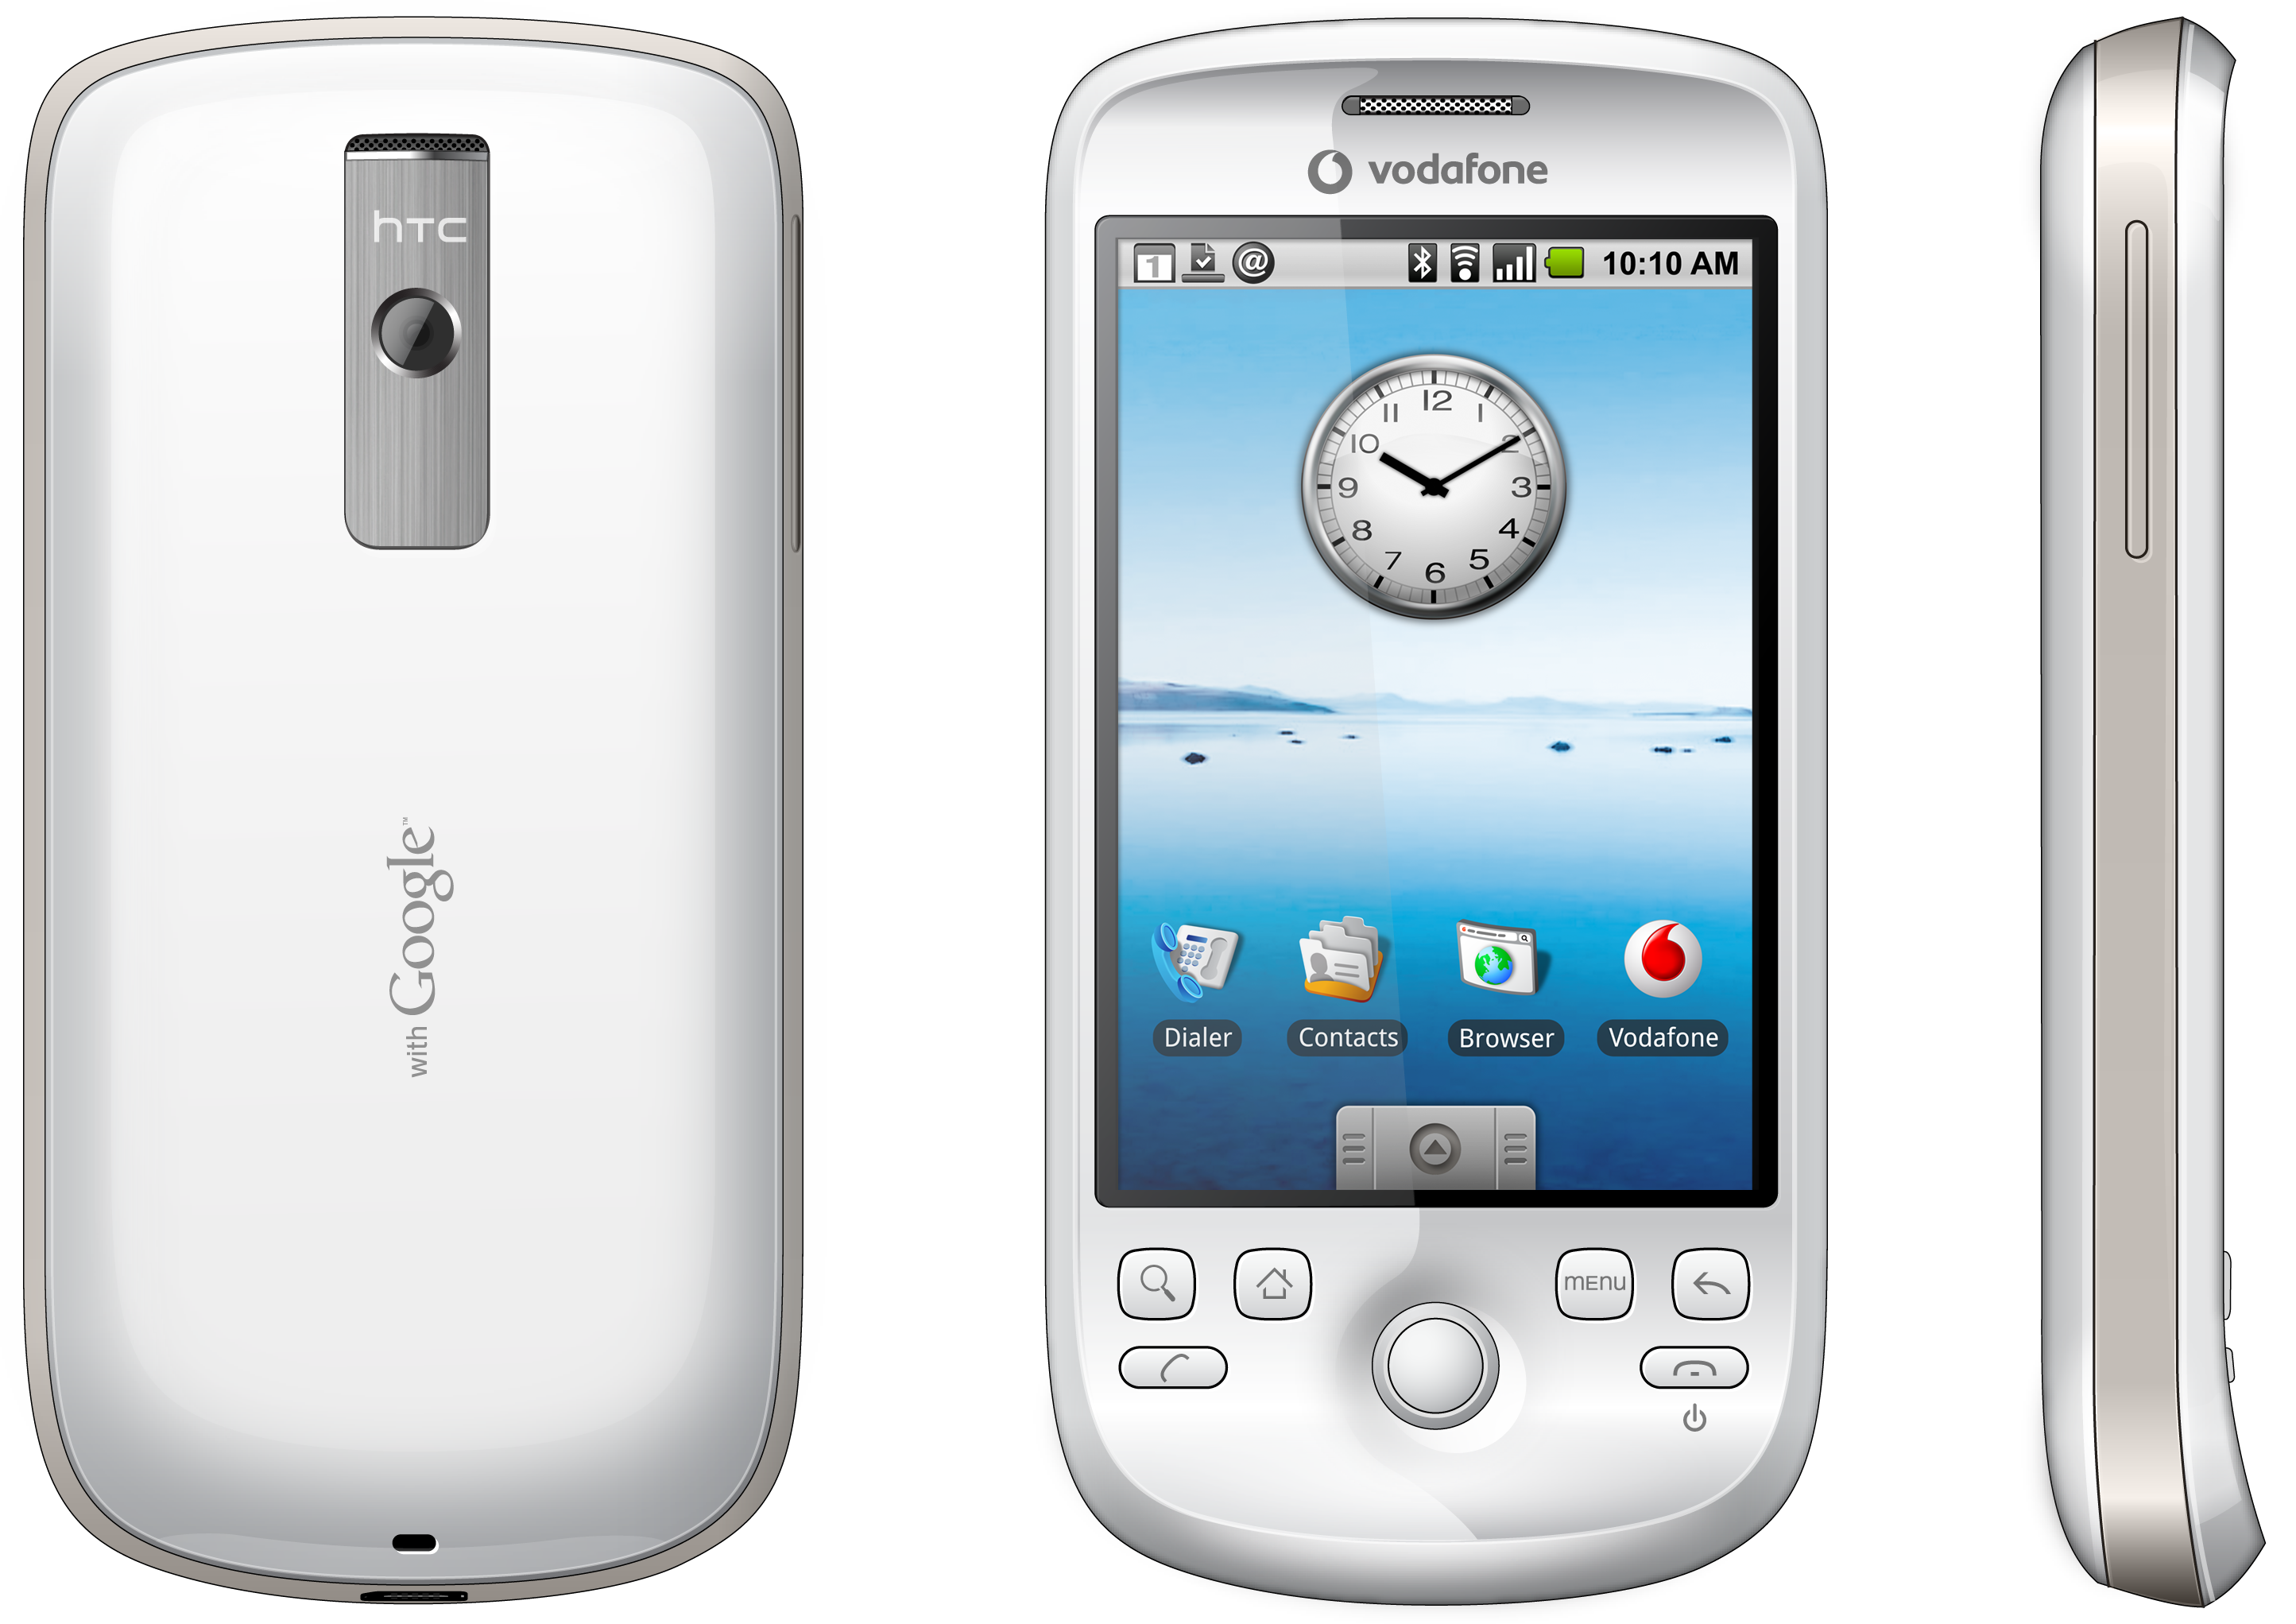 Camera Htc Qwerty Android Phones smartphone nation vodafone announces first android phone htc magic